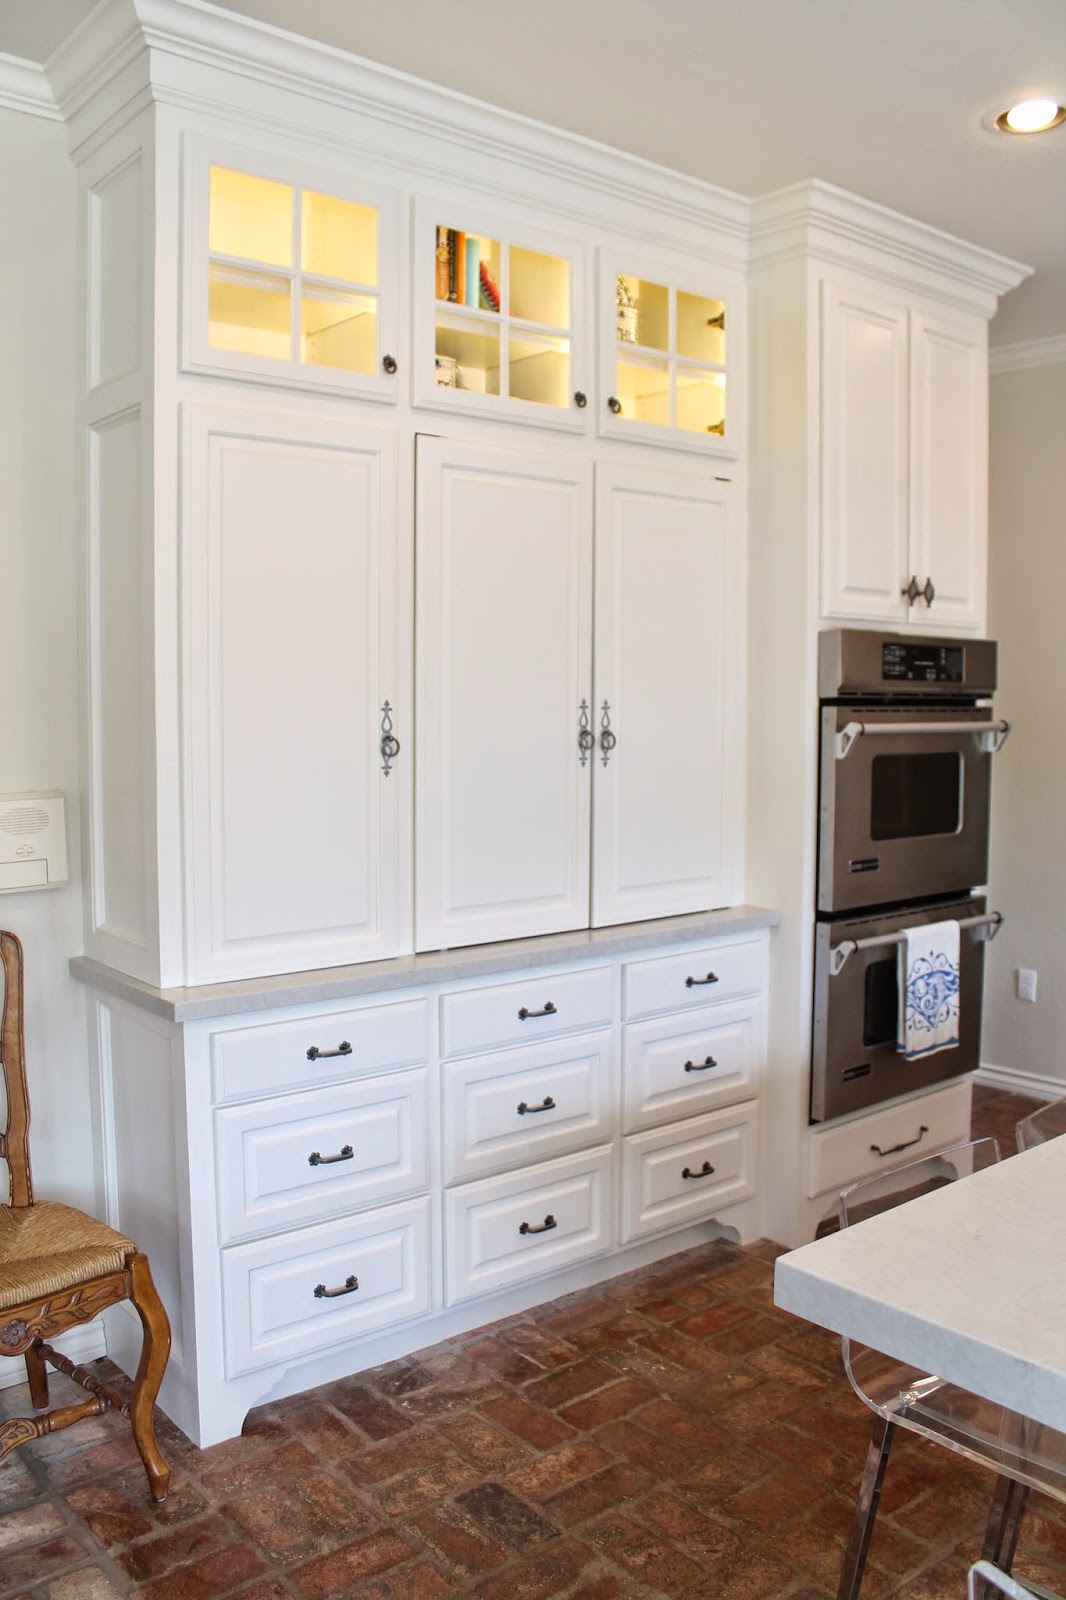 Hidden Liance Cabinet And Desk Command Center In The Kitchen